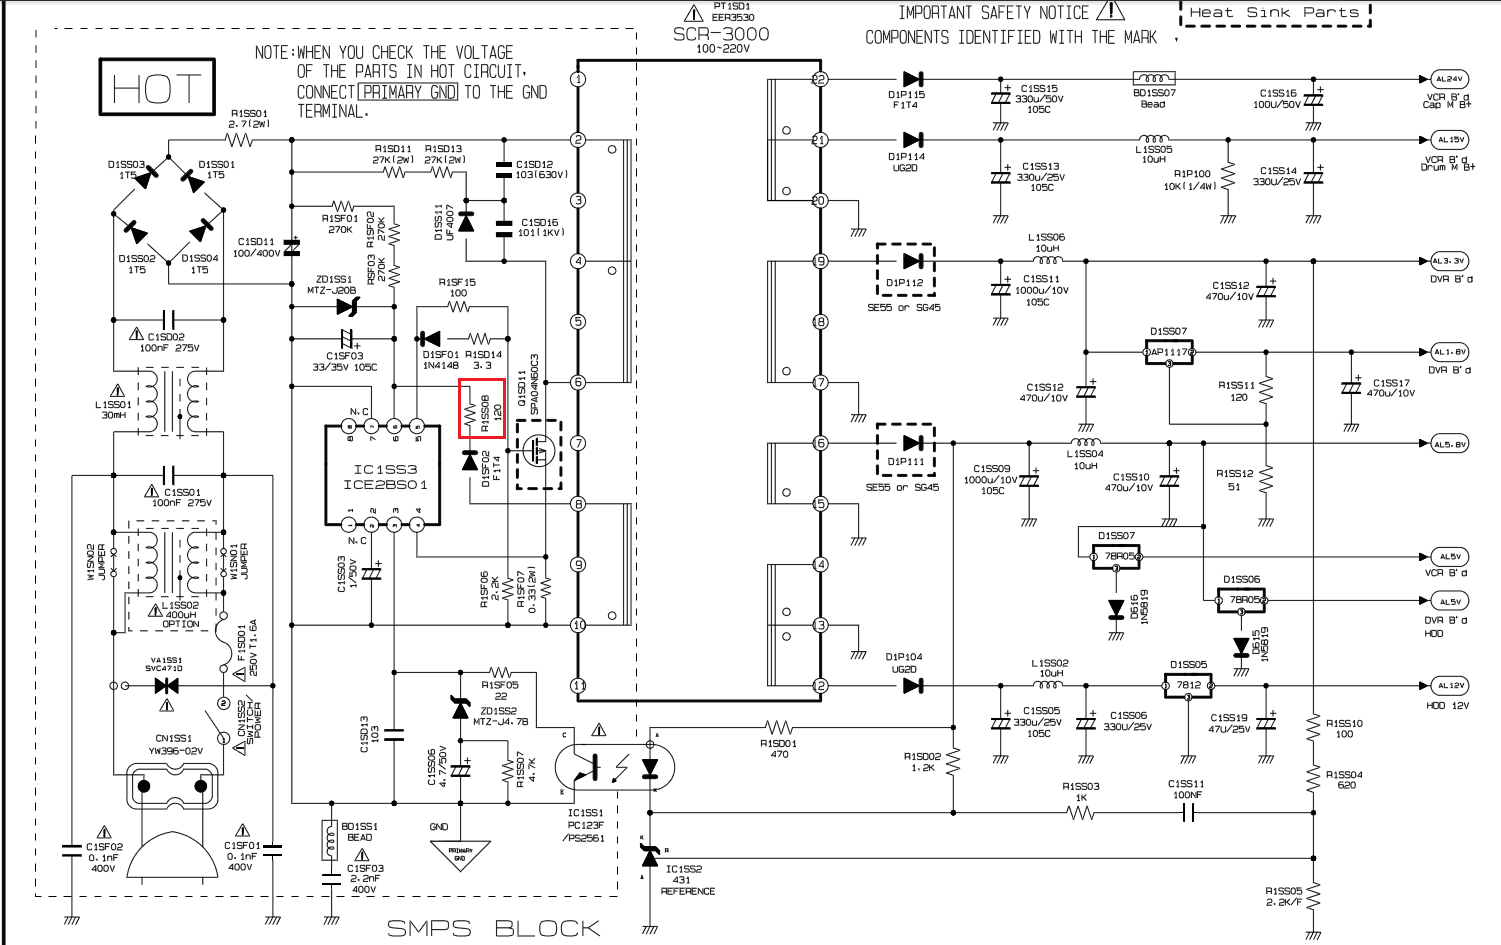 Rc 3000 Wiring Diagram Just Another Blog Winch Diagrams Free Download Schematic Library Rh 53 Gebaeudereinigung Pach De Servo